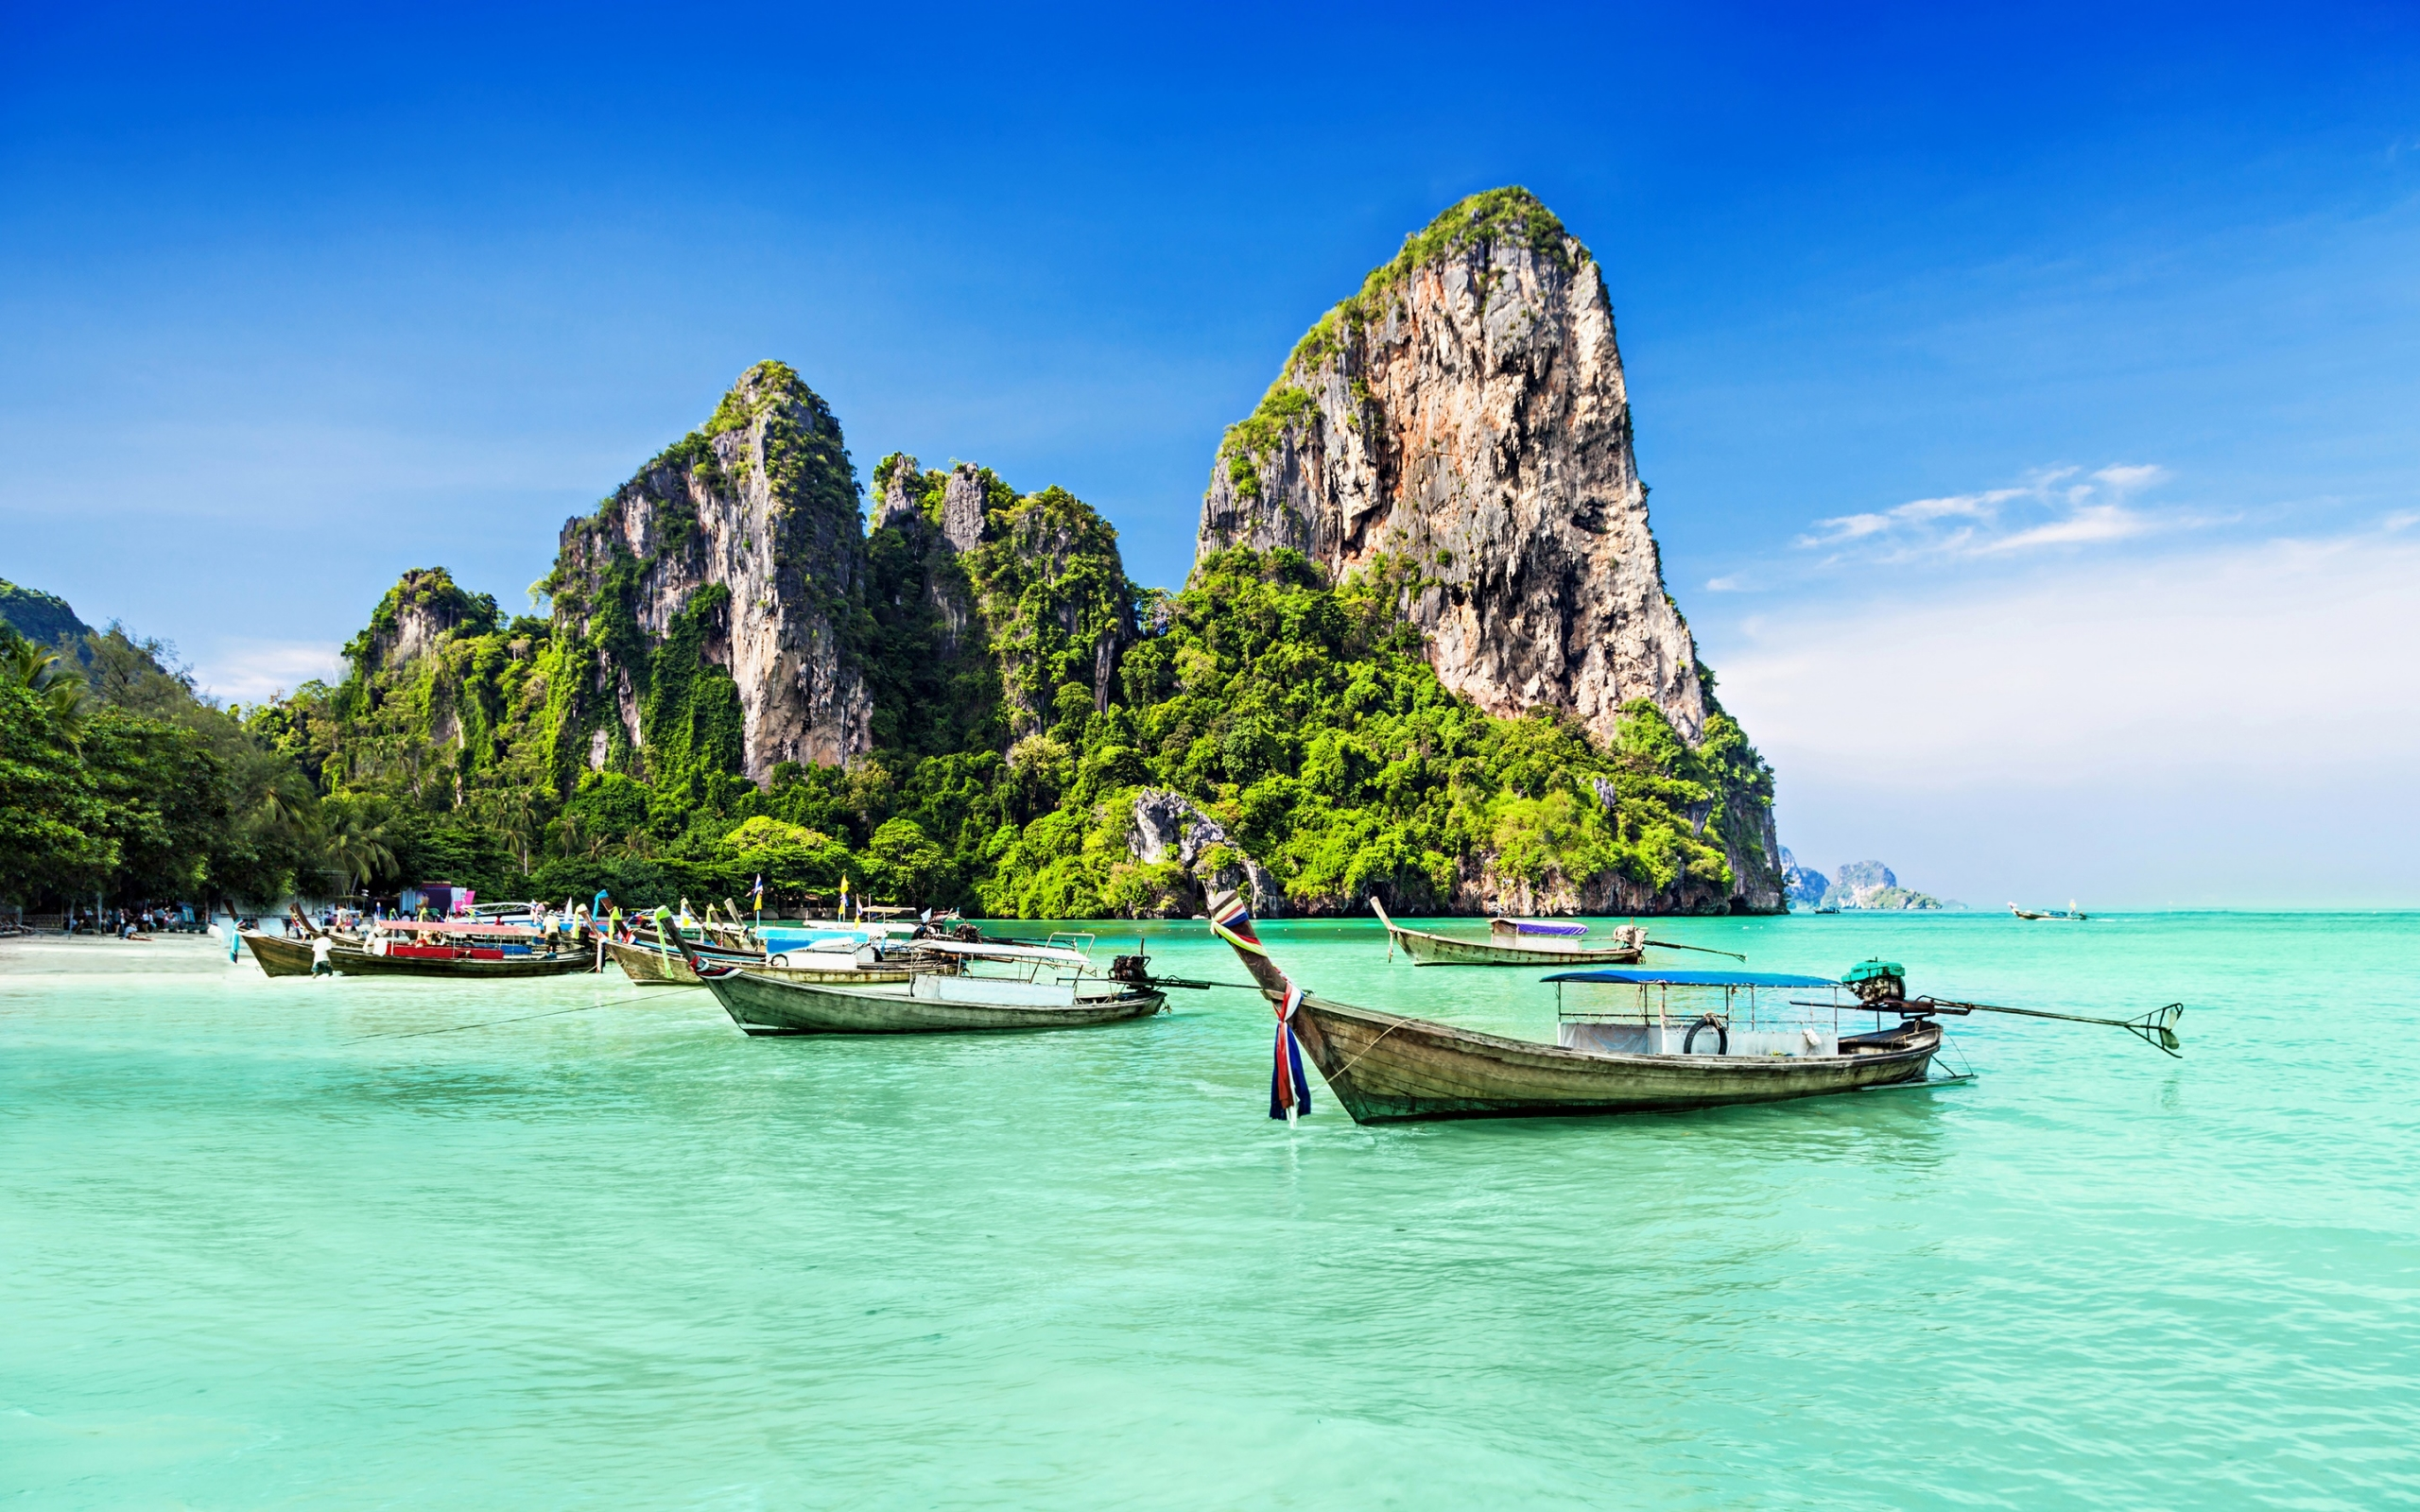 Phuket Thailand Wallpaper - WallpaperSafari